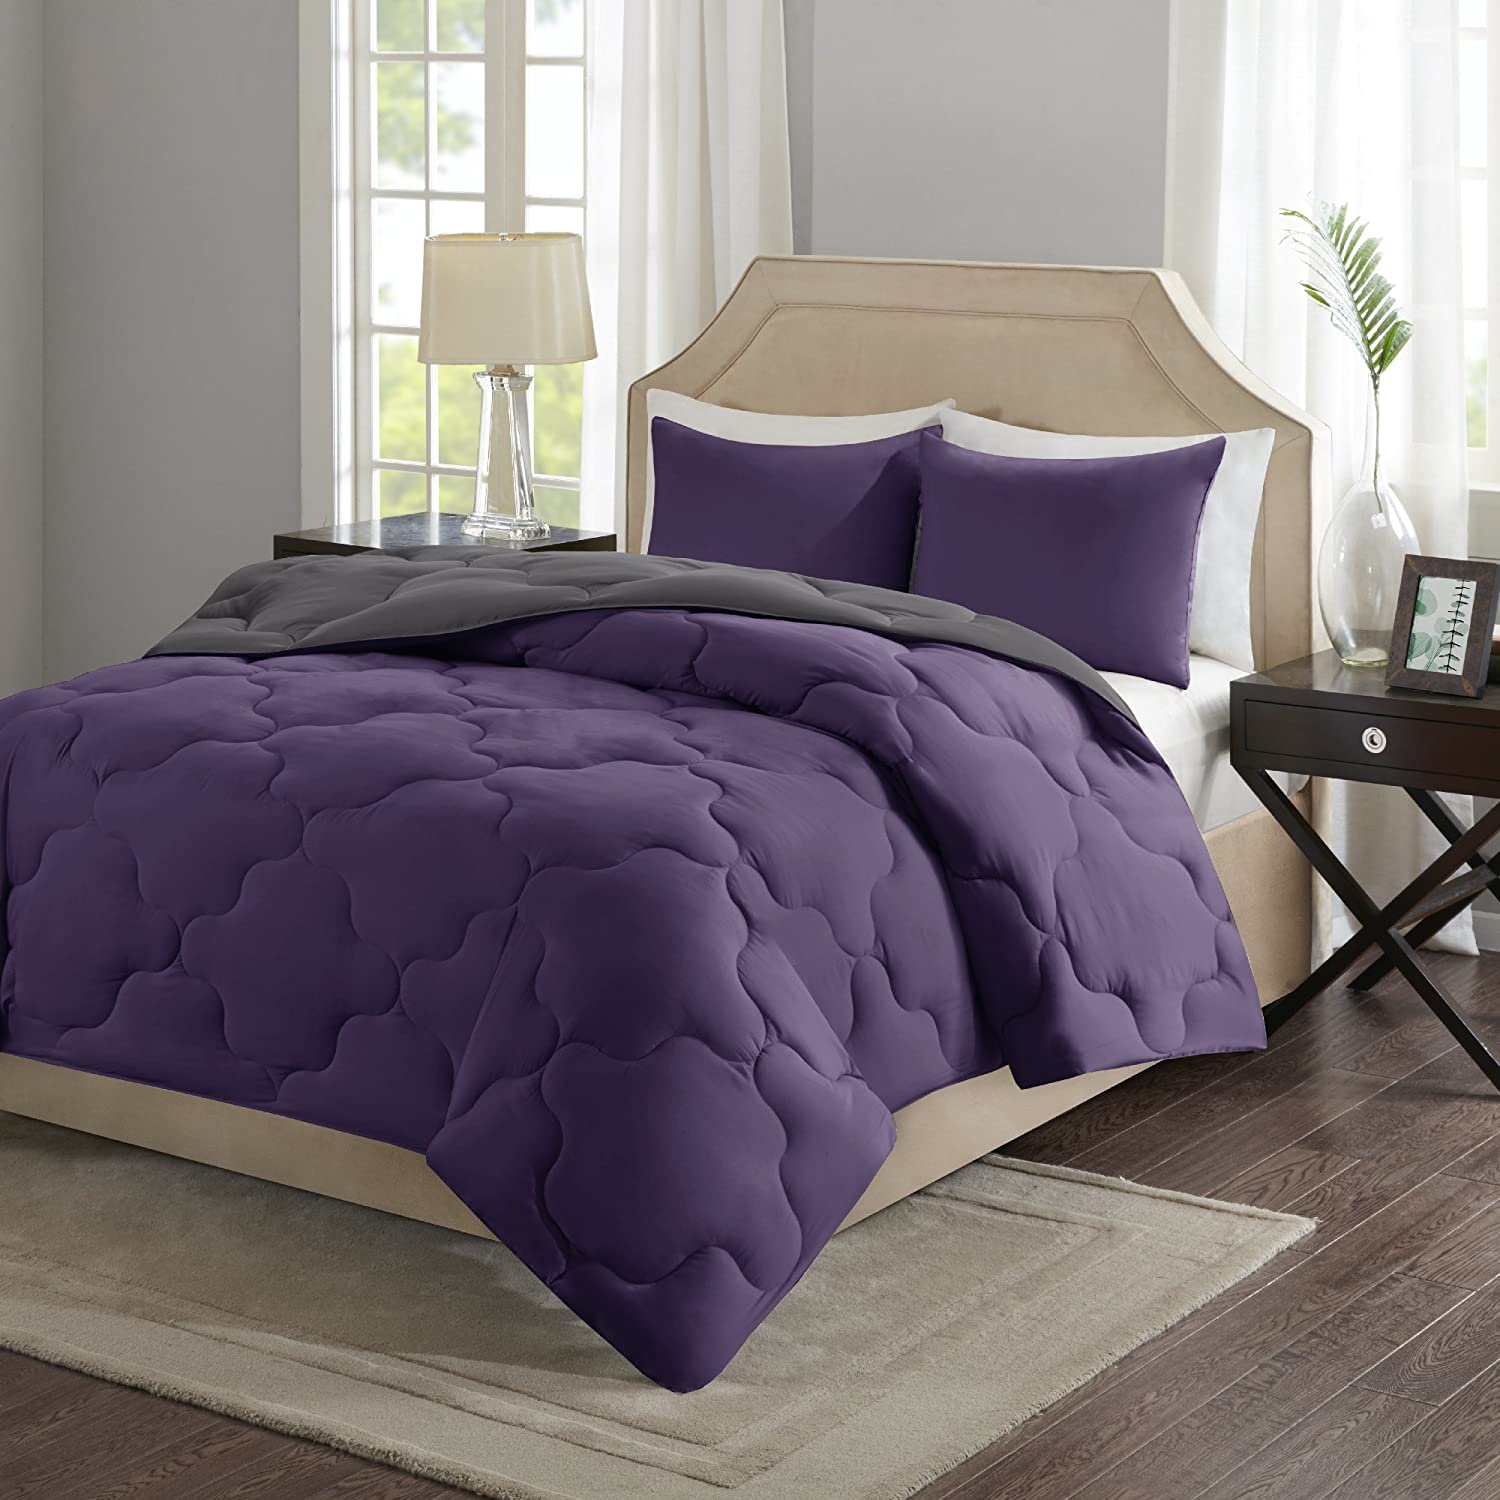 Comfort Spaces – Vixie Reversible Goose Down Alternative Comforter Mini Set - 2 Piece – Purple and Charcoal – Stitched Geometrical Diamond Pattern